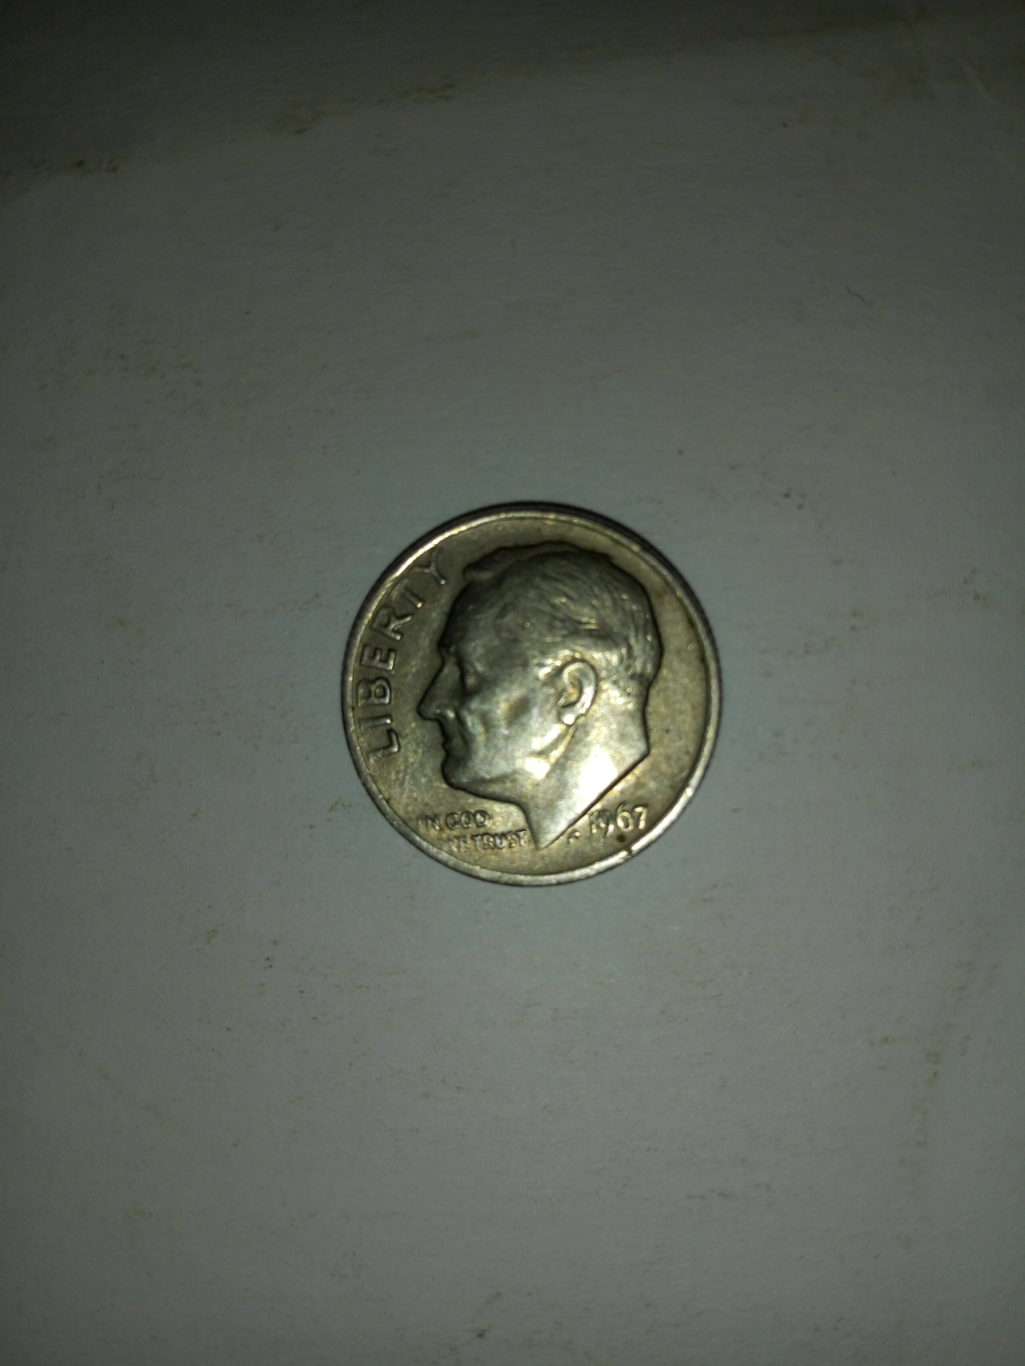 1967_united States of America 1 dime